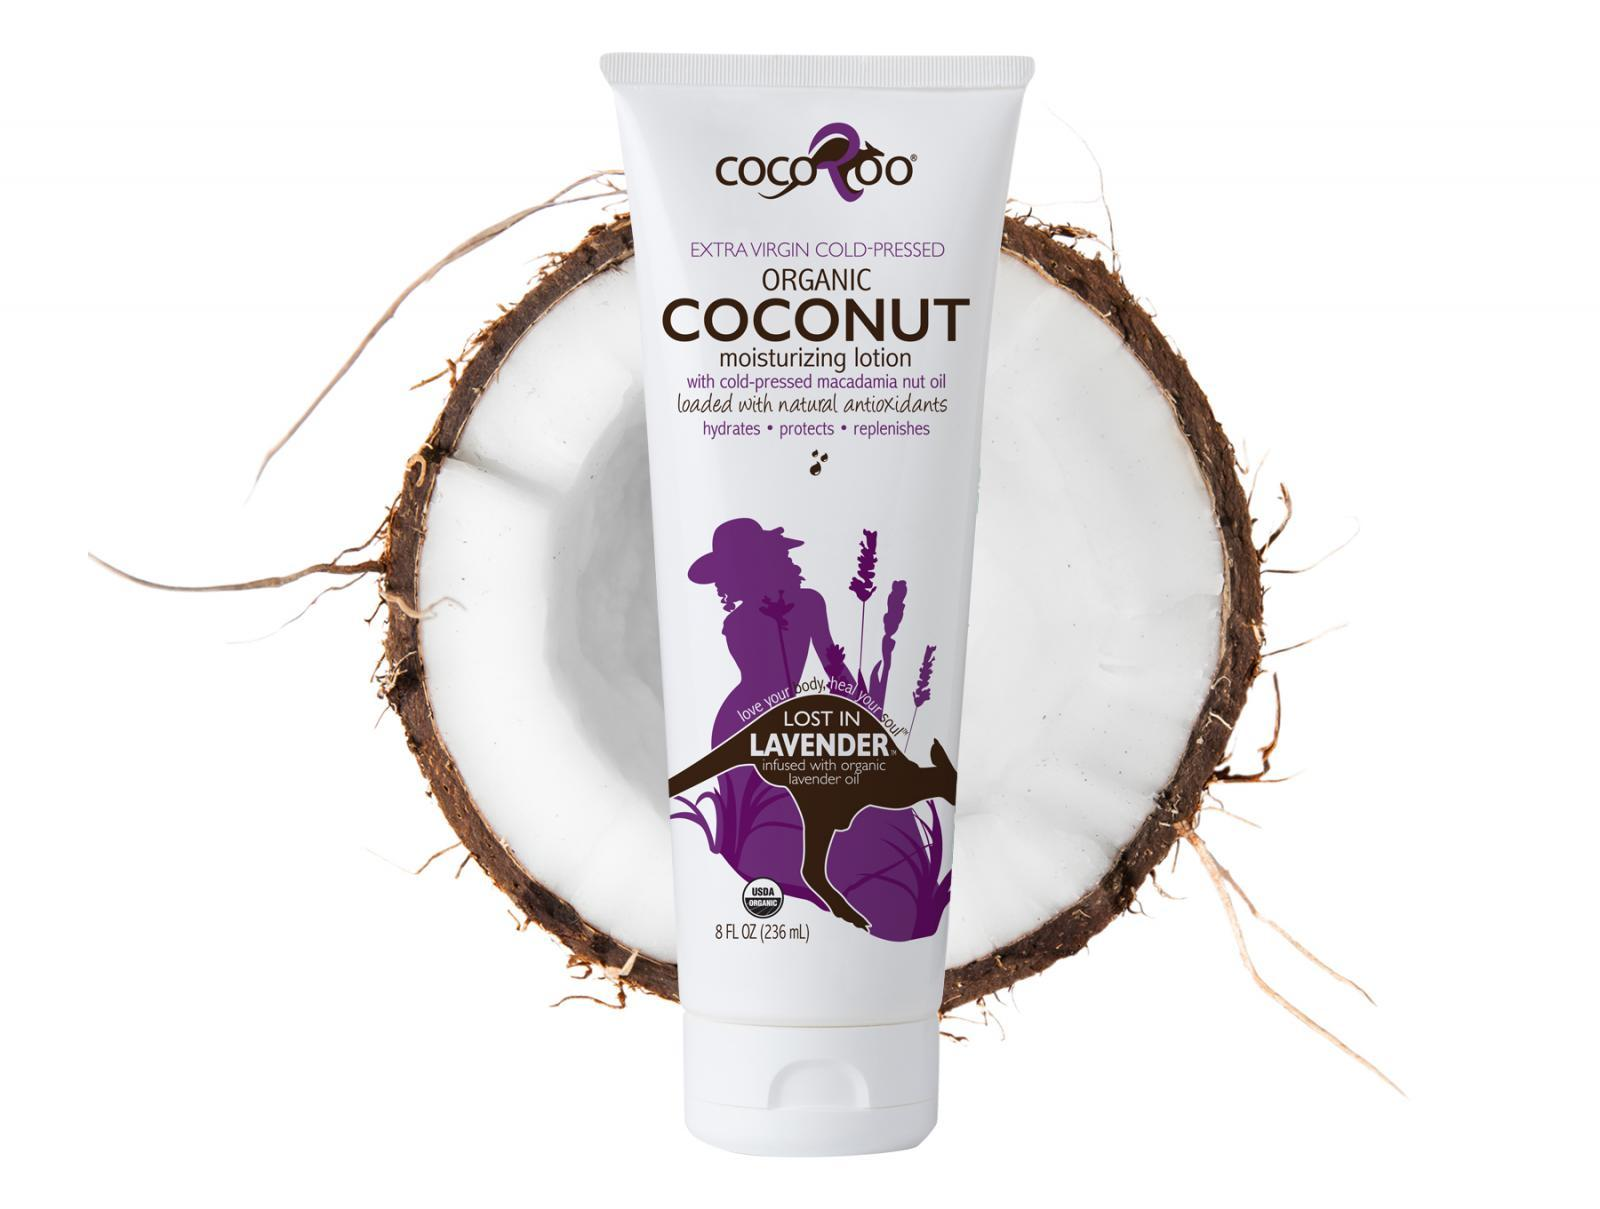 Lost in Lavender Coconut Oil Moisturizer